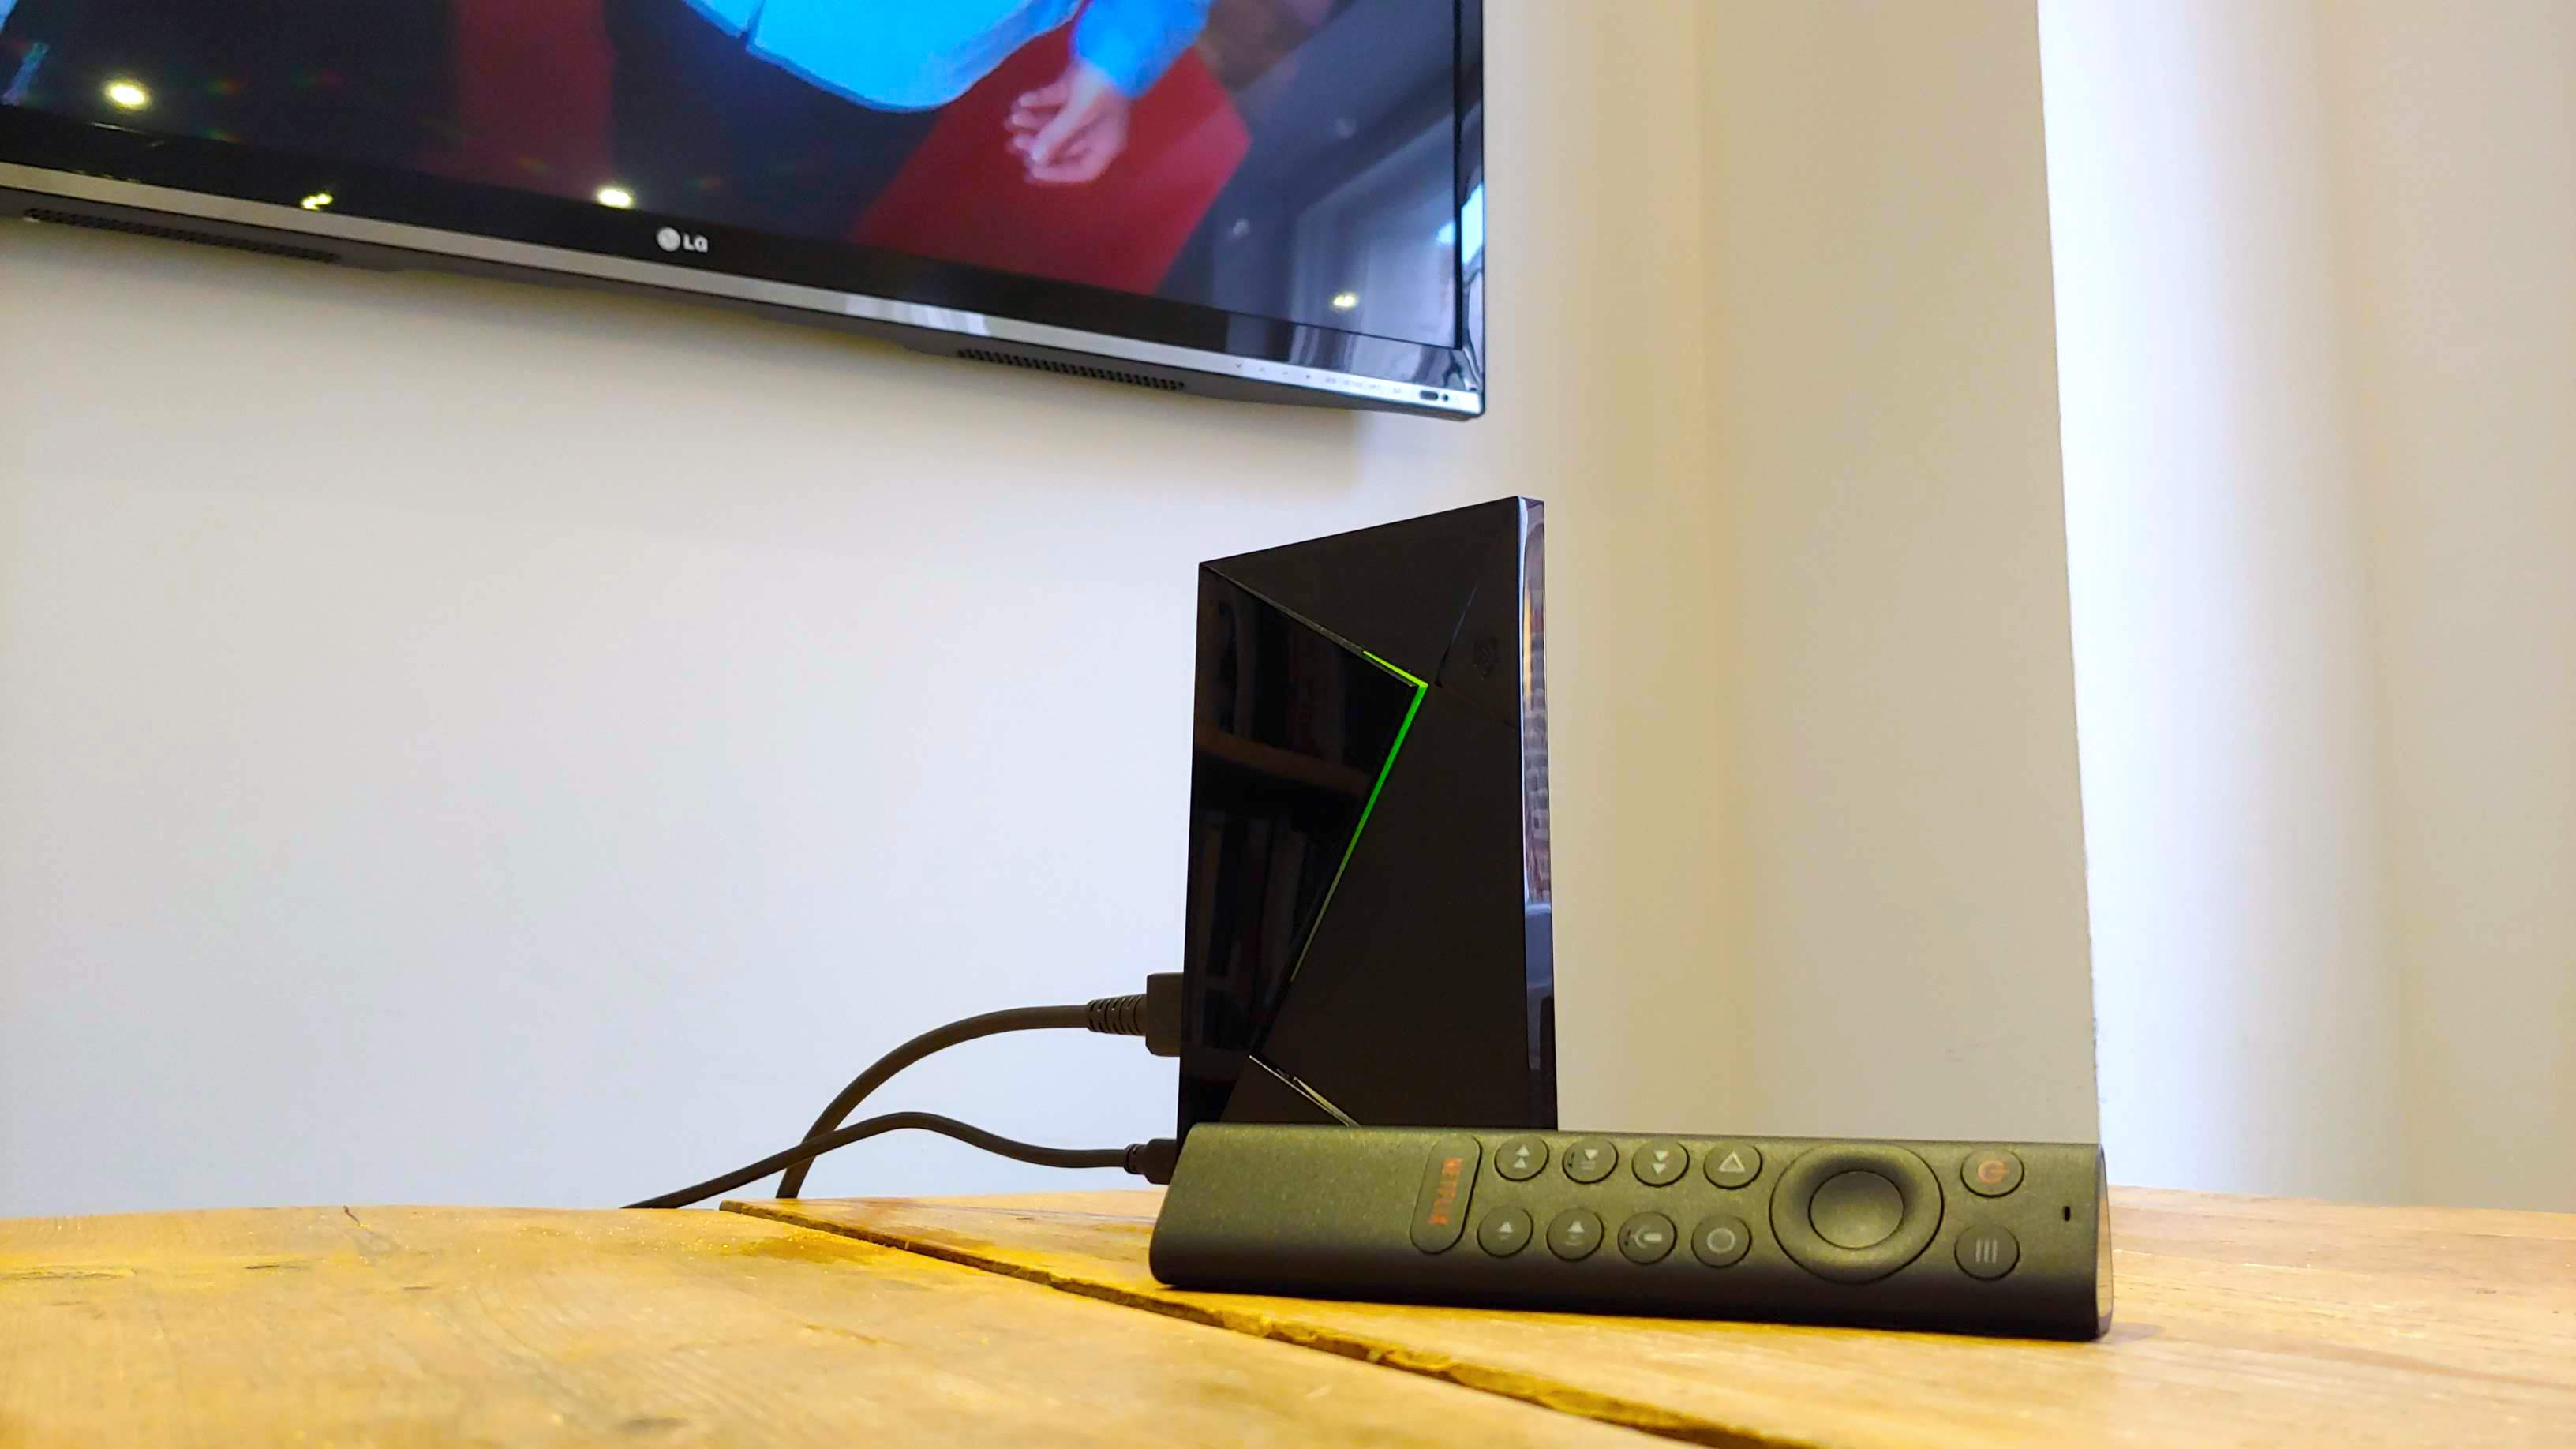 The Nvidia Shield TV Pro all wired up, with the remote in the foreground